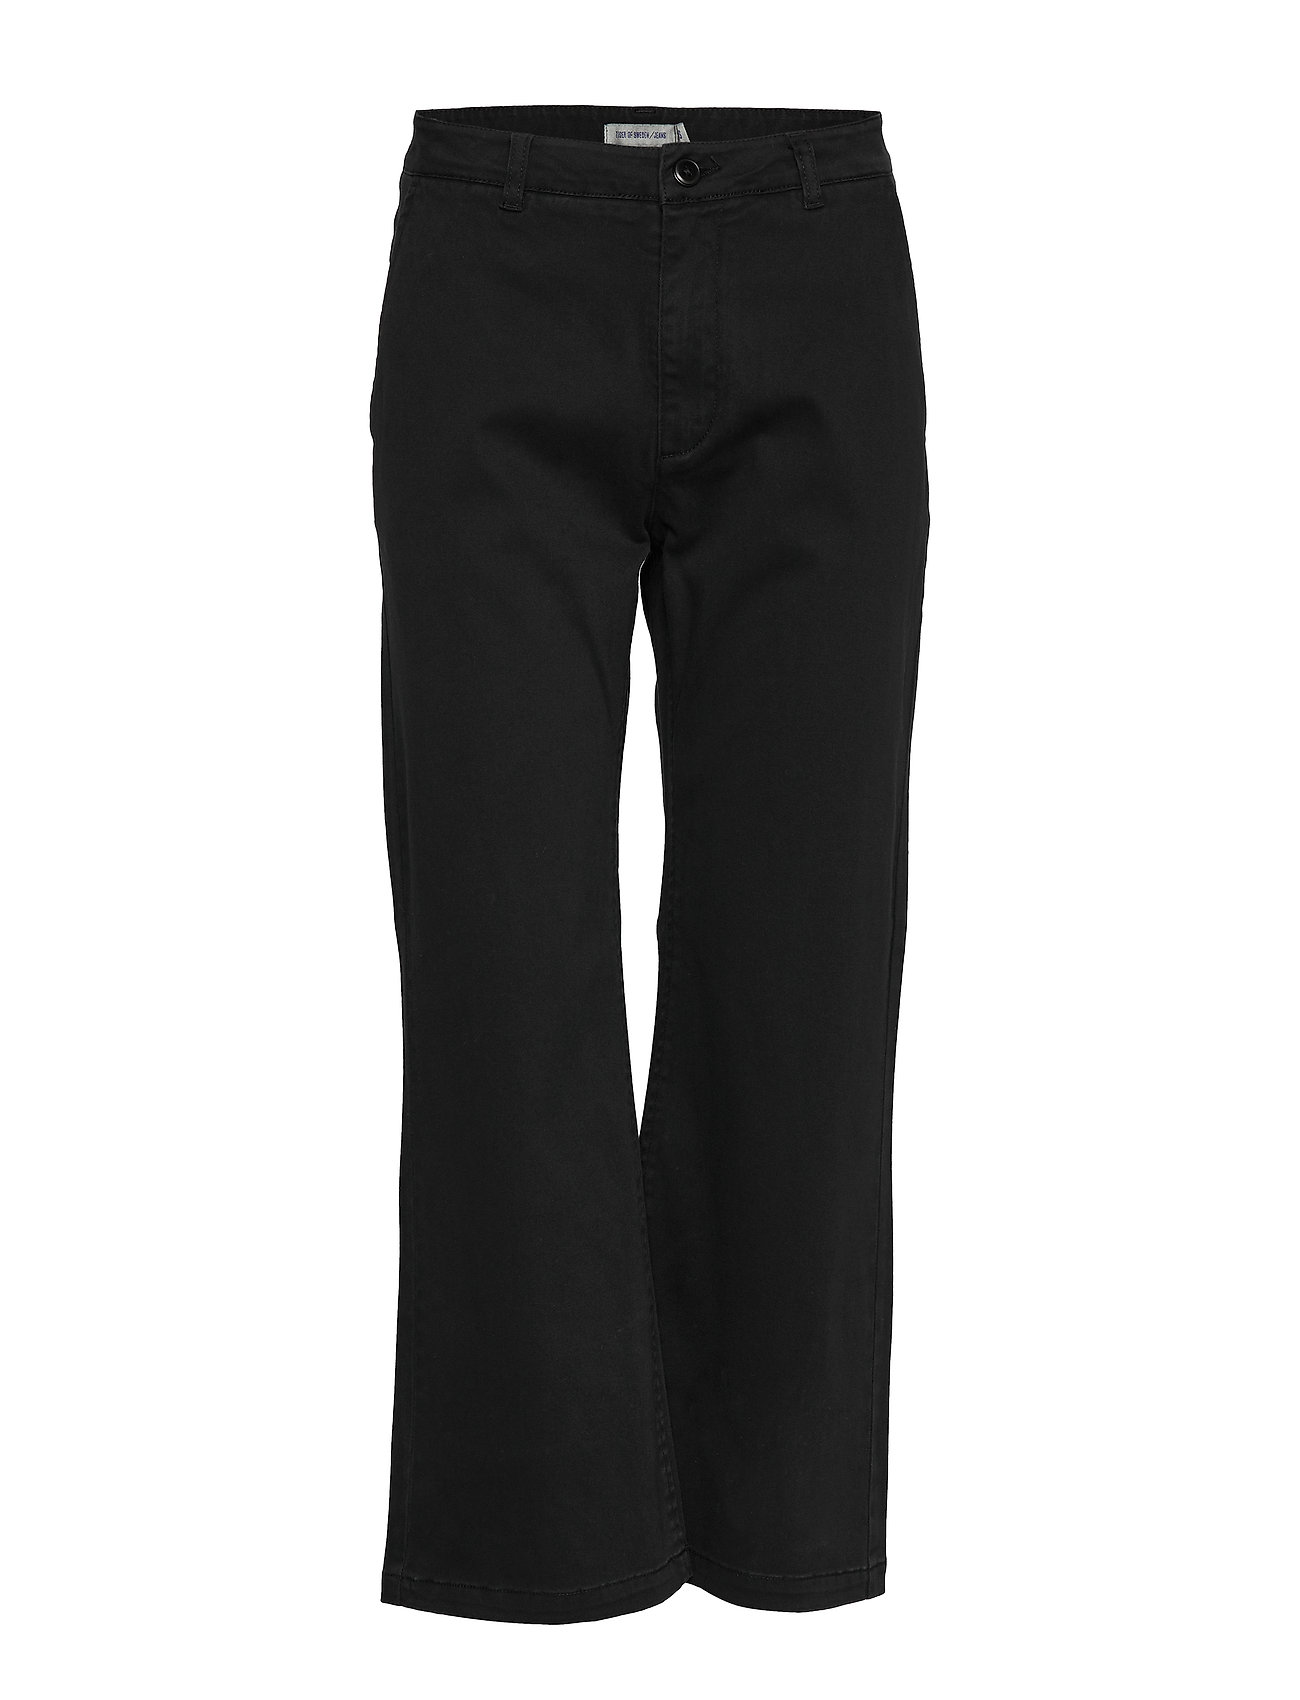 Tiger of Sweden Jeans EIRIA - BLACK